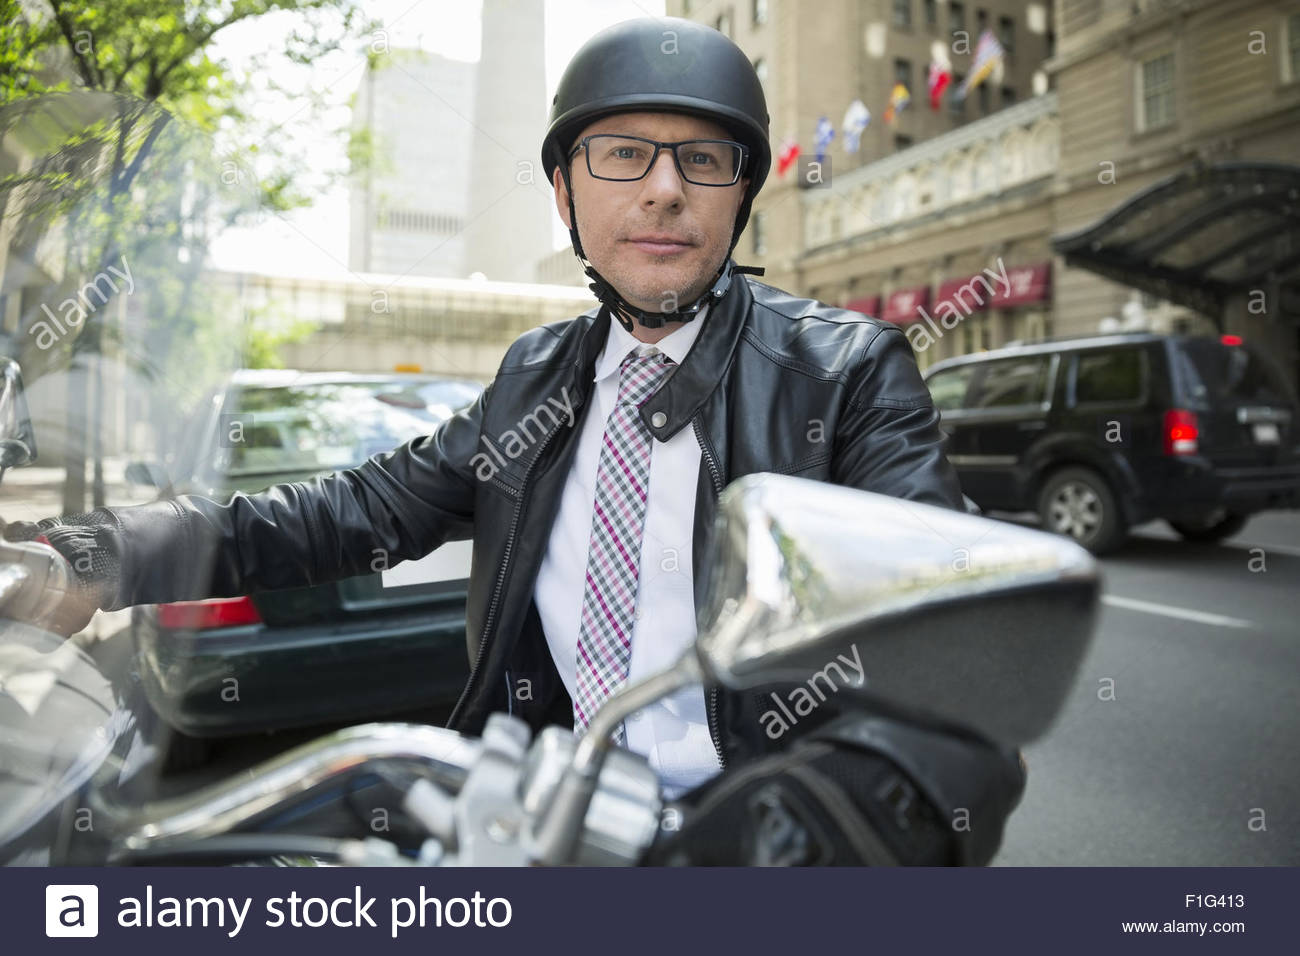 Portrait confident businessman commuting on motorcycle - Stock Image